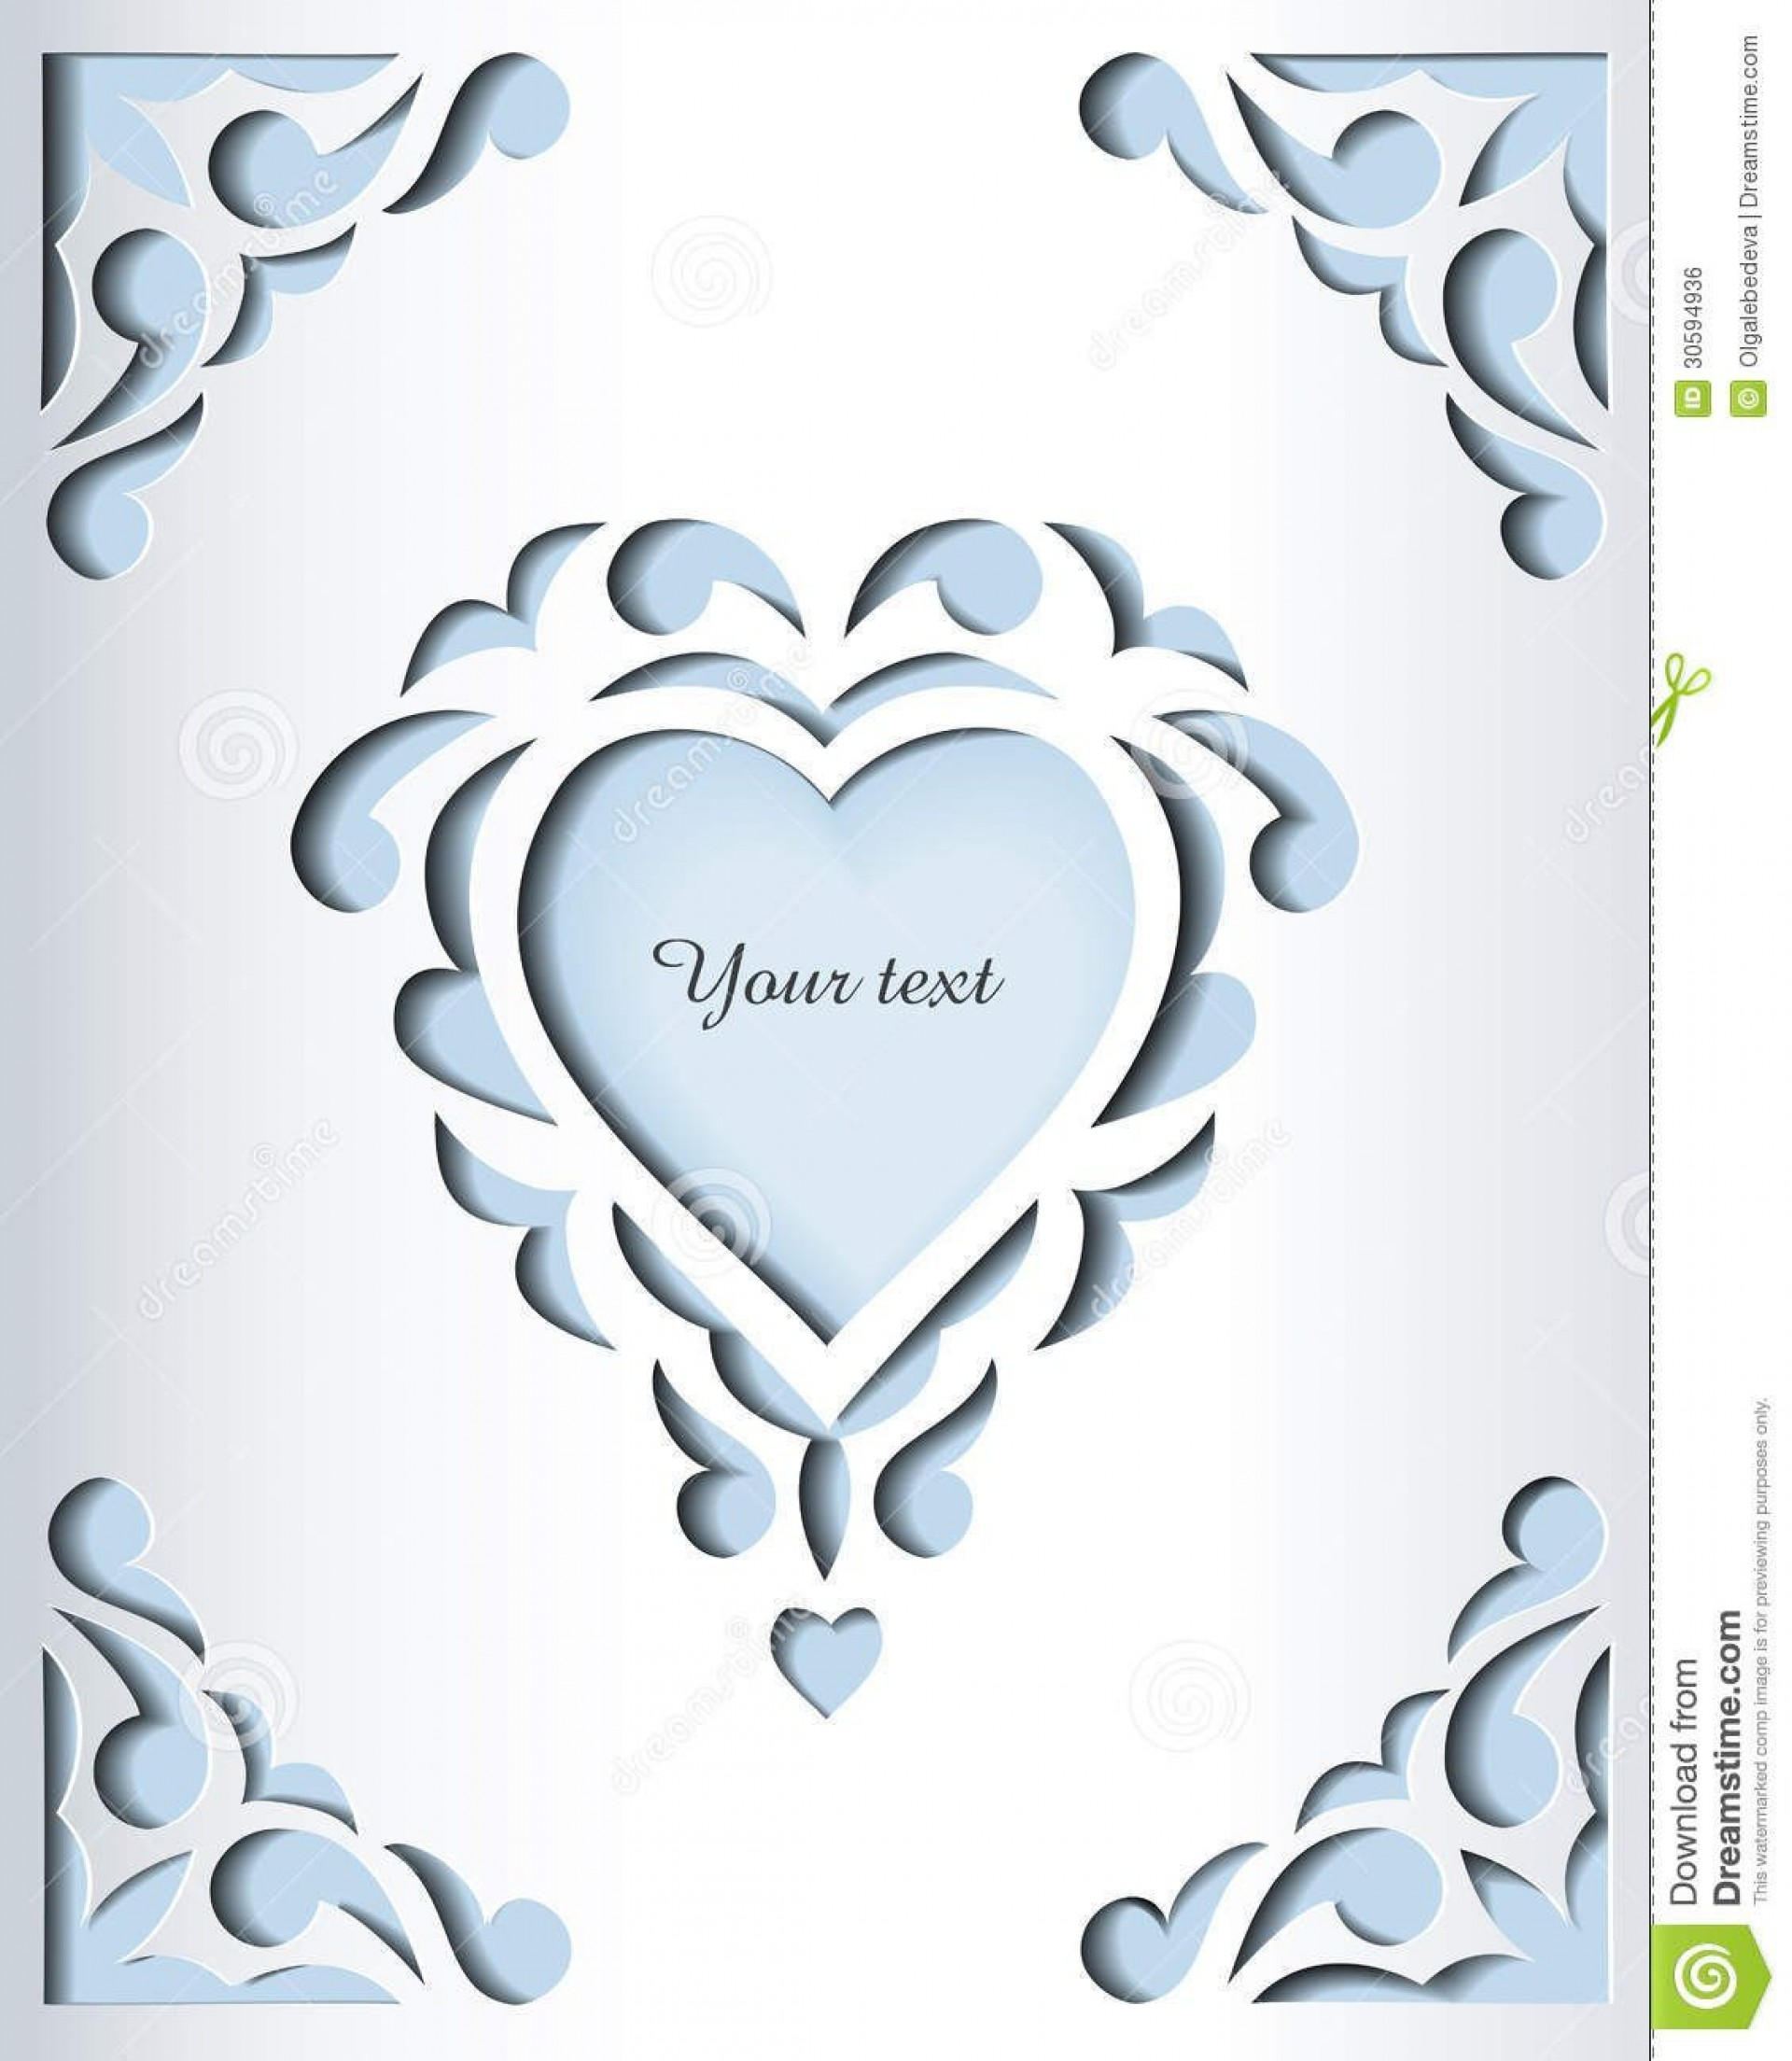 008 Unforgettable Paper Cut Out Template Sample  Templates Flower Doll Free1920